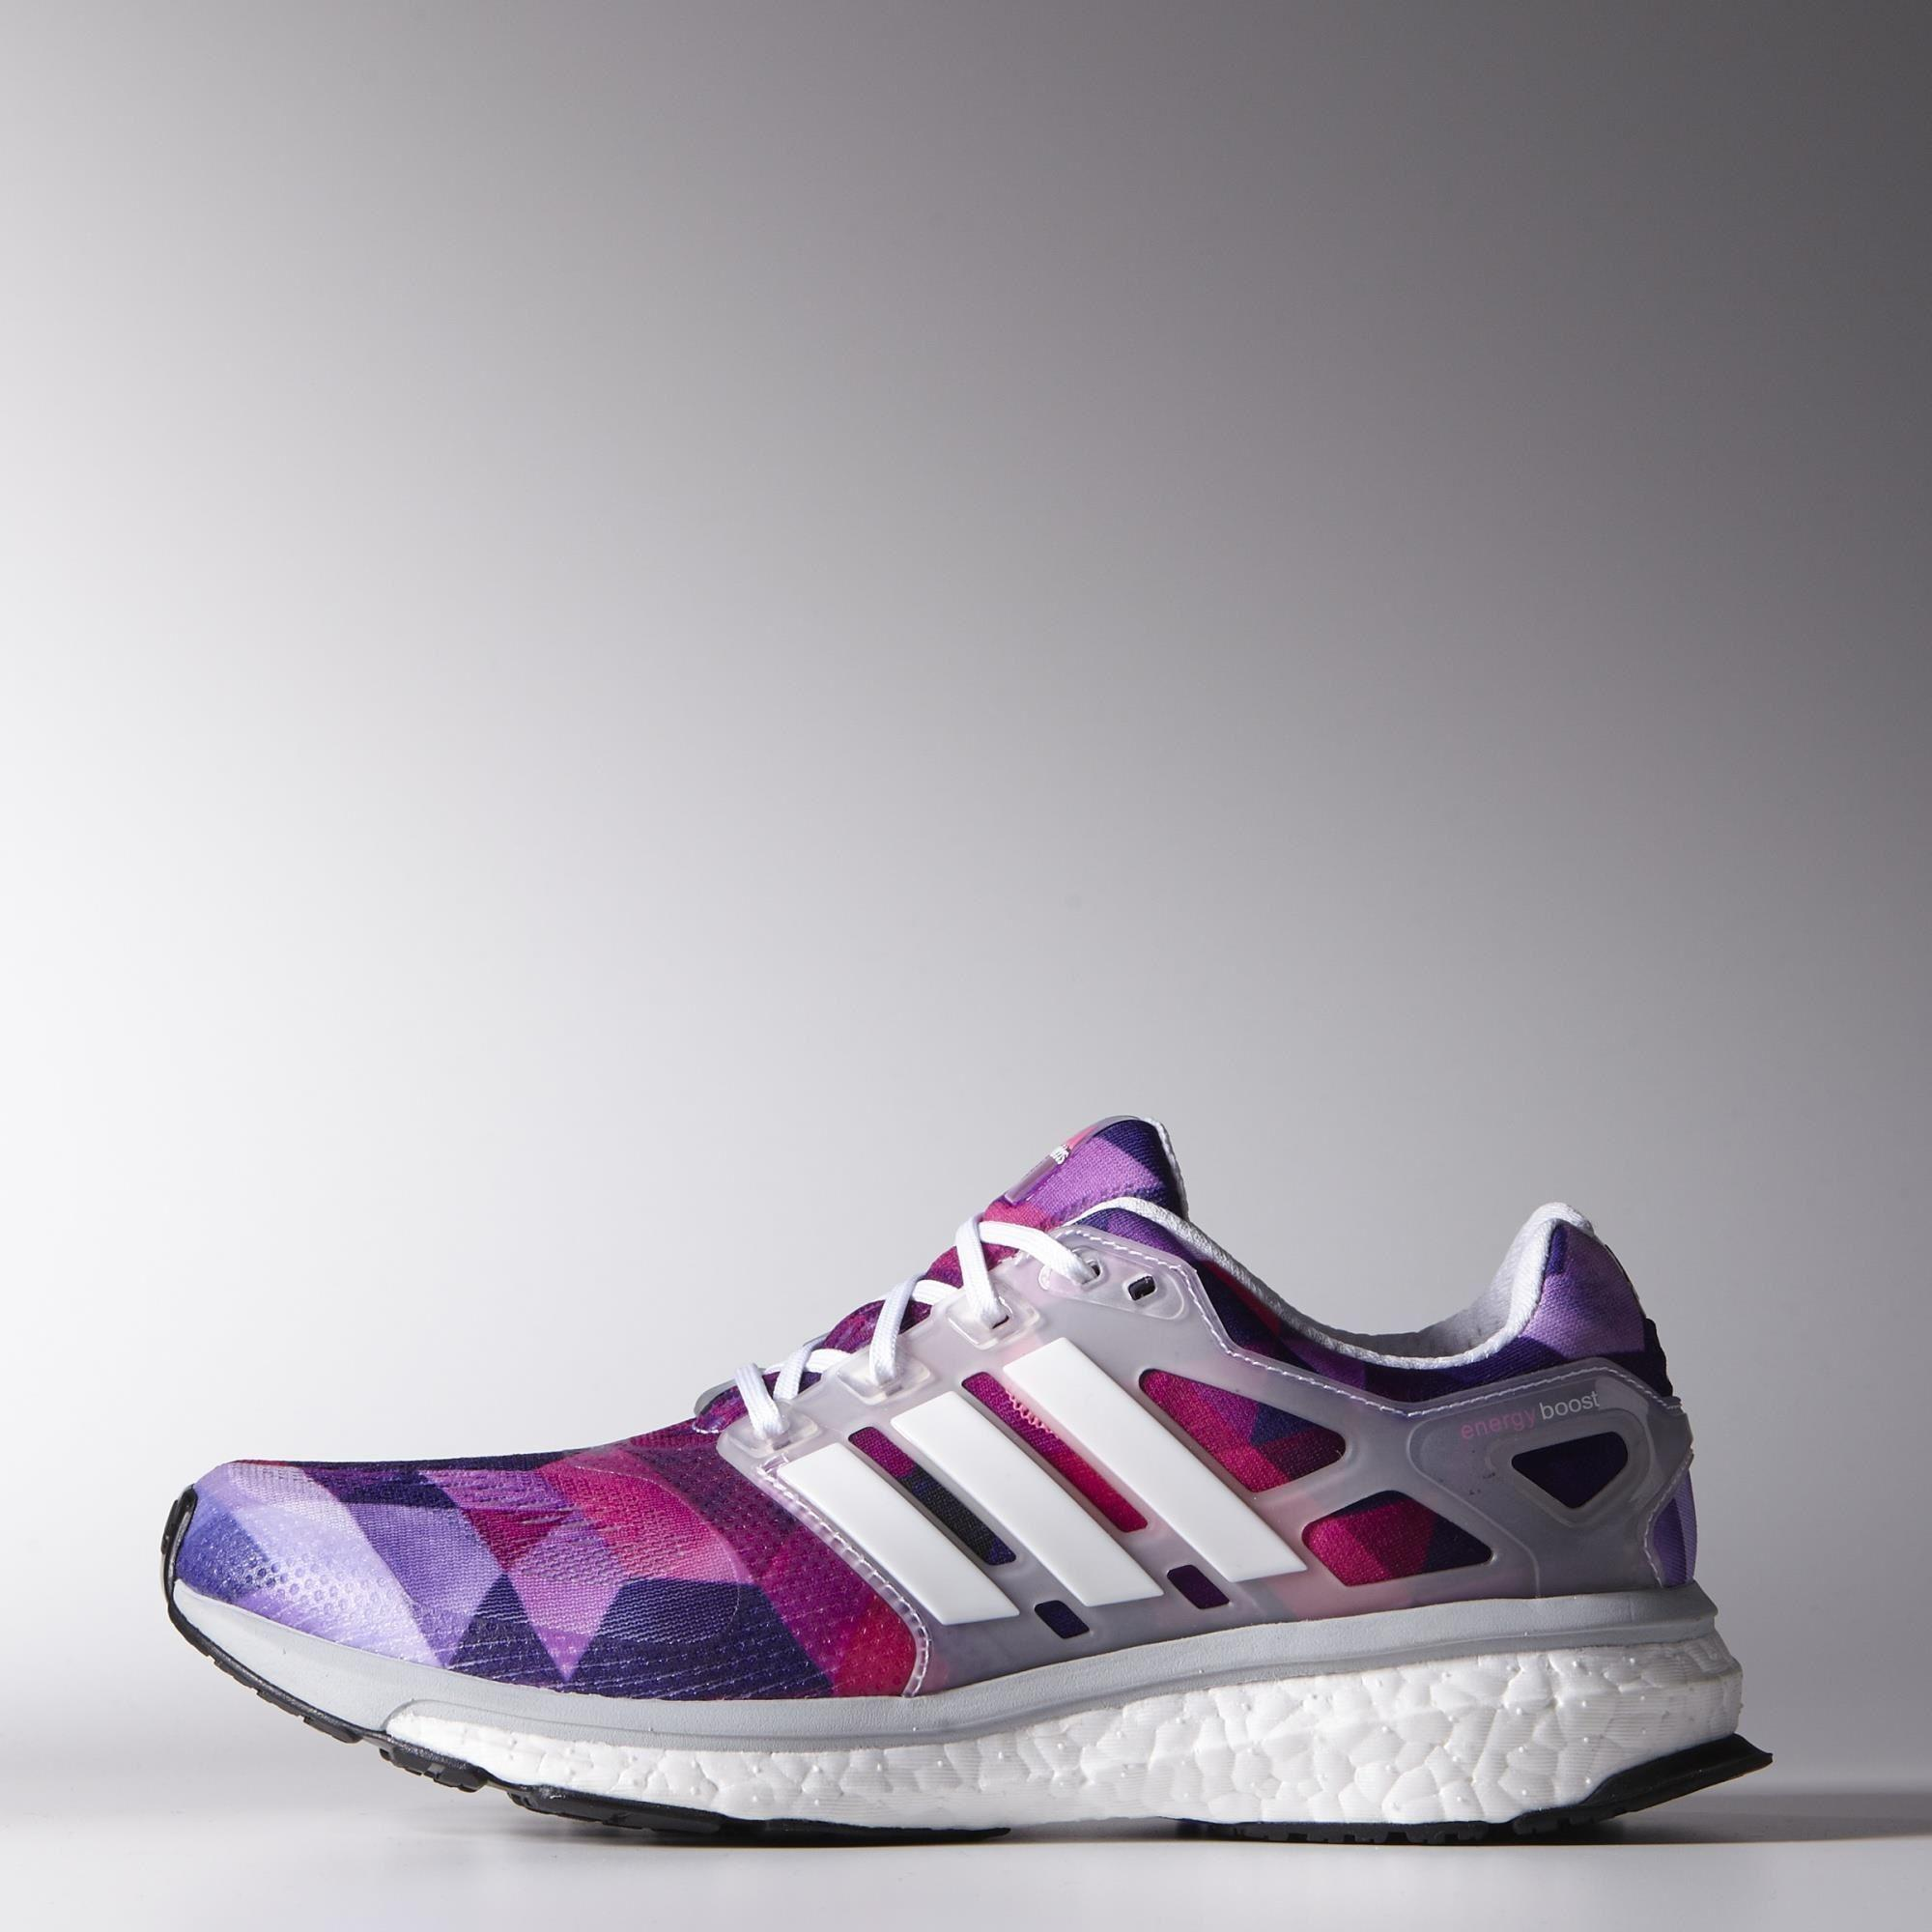 8e0590f54 Adidas Womens Energy Boost ESM Running Shoes - White Purple Pink -  Tennisnuts.com